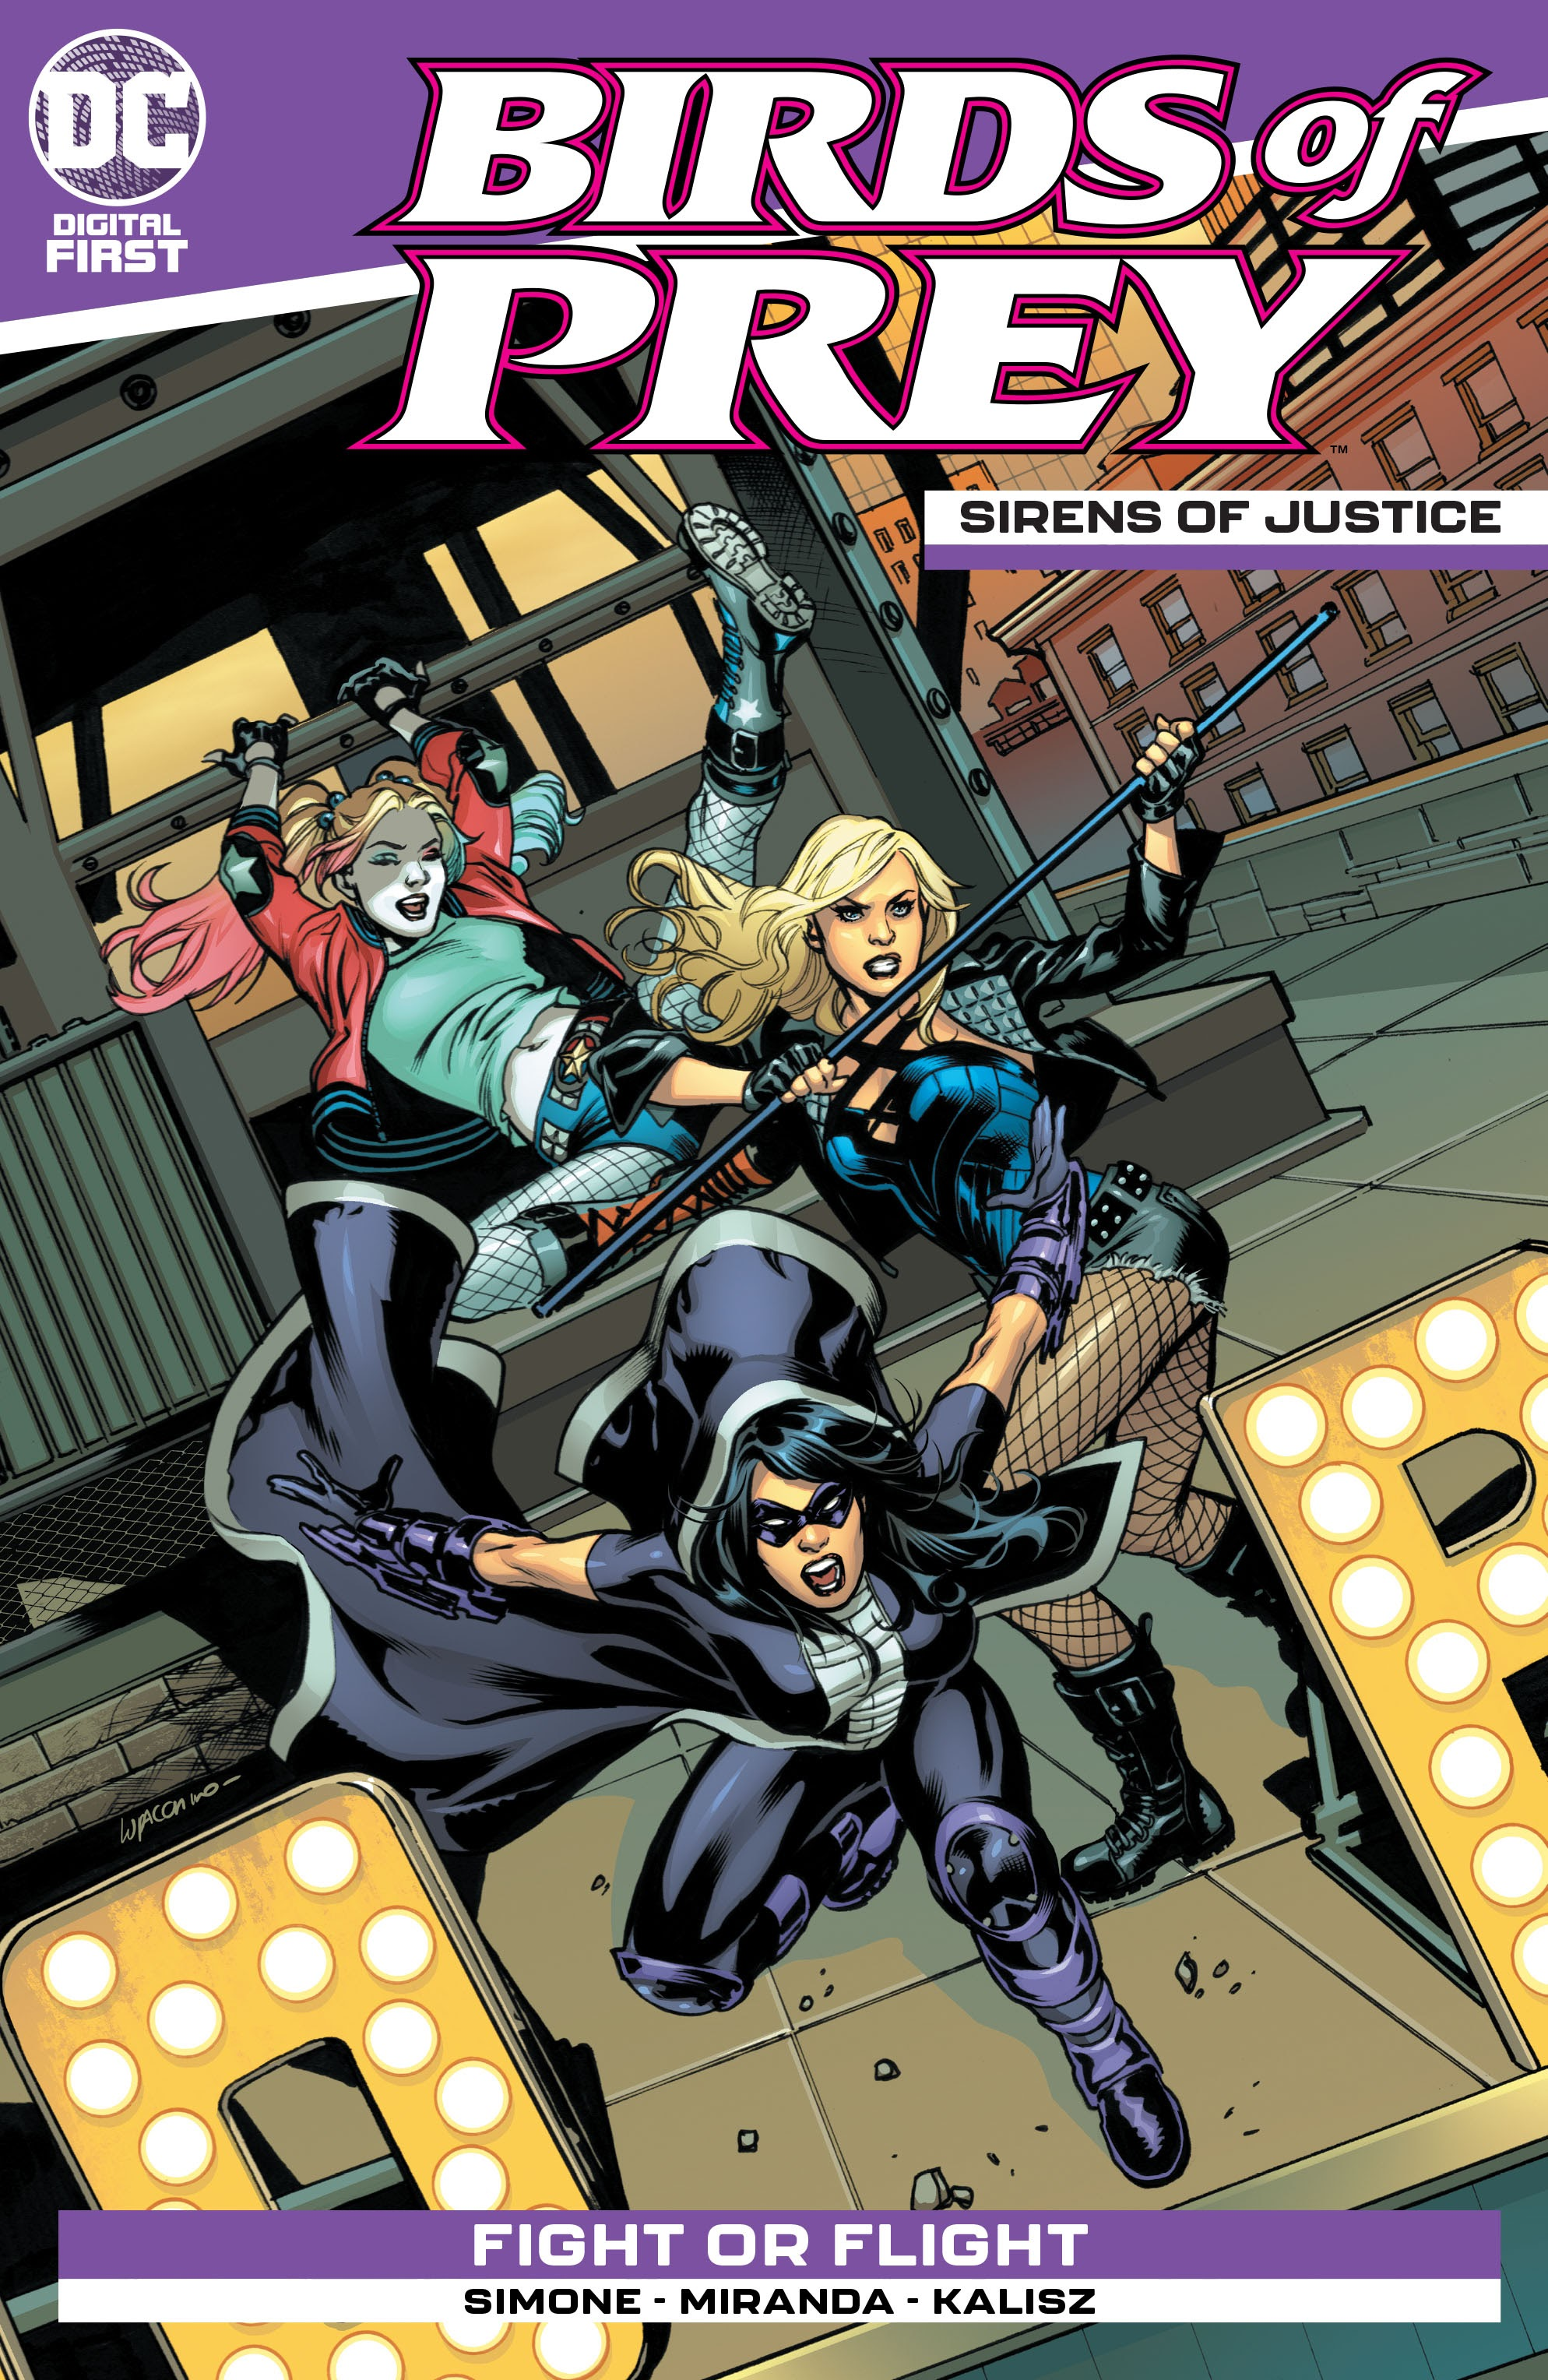 Birds of Prey: Sirens of Justice Vol 1 1 (Digital)